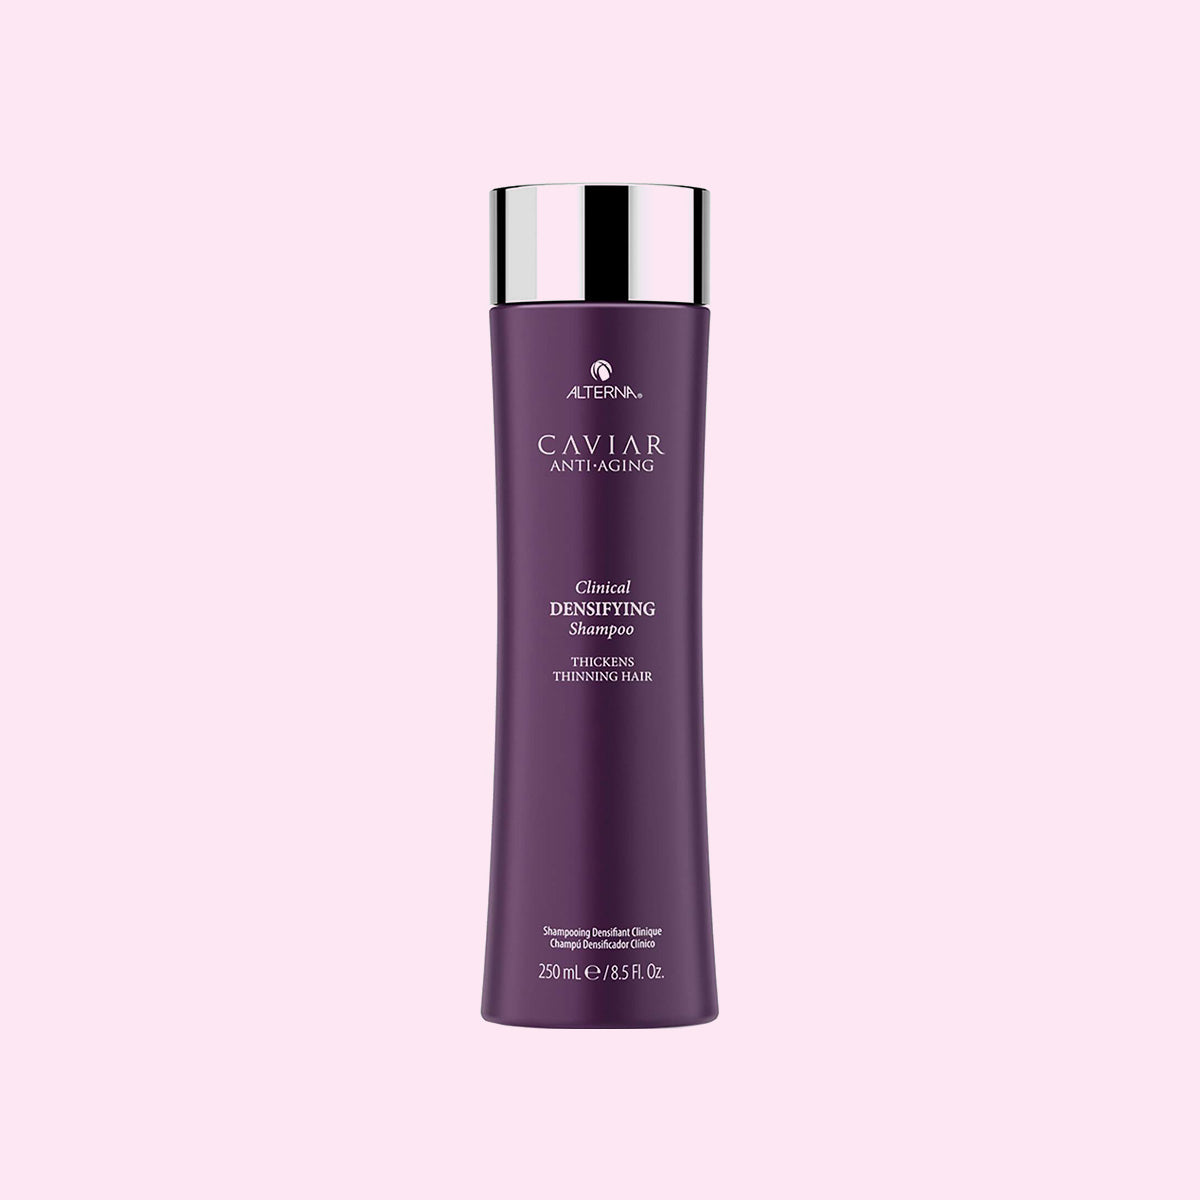 Alterna Caviar Clinical Densifying Shampoo 250ml